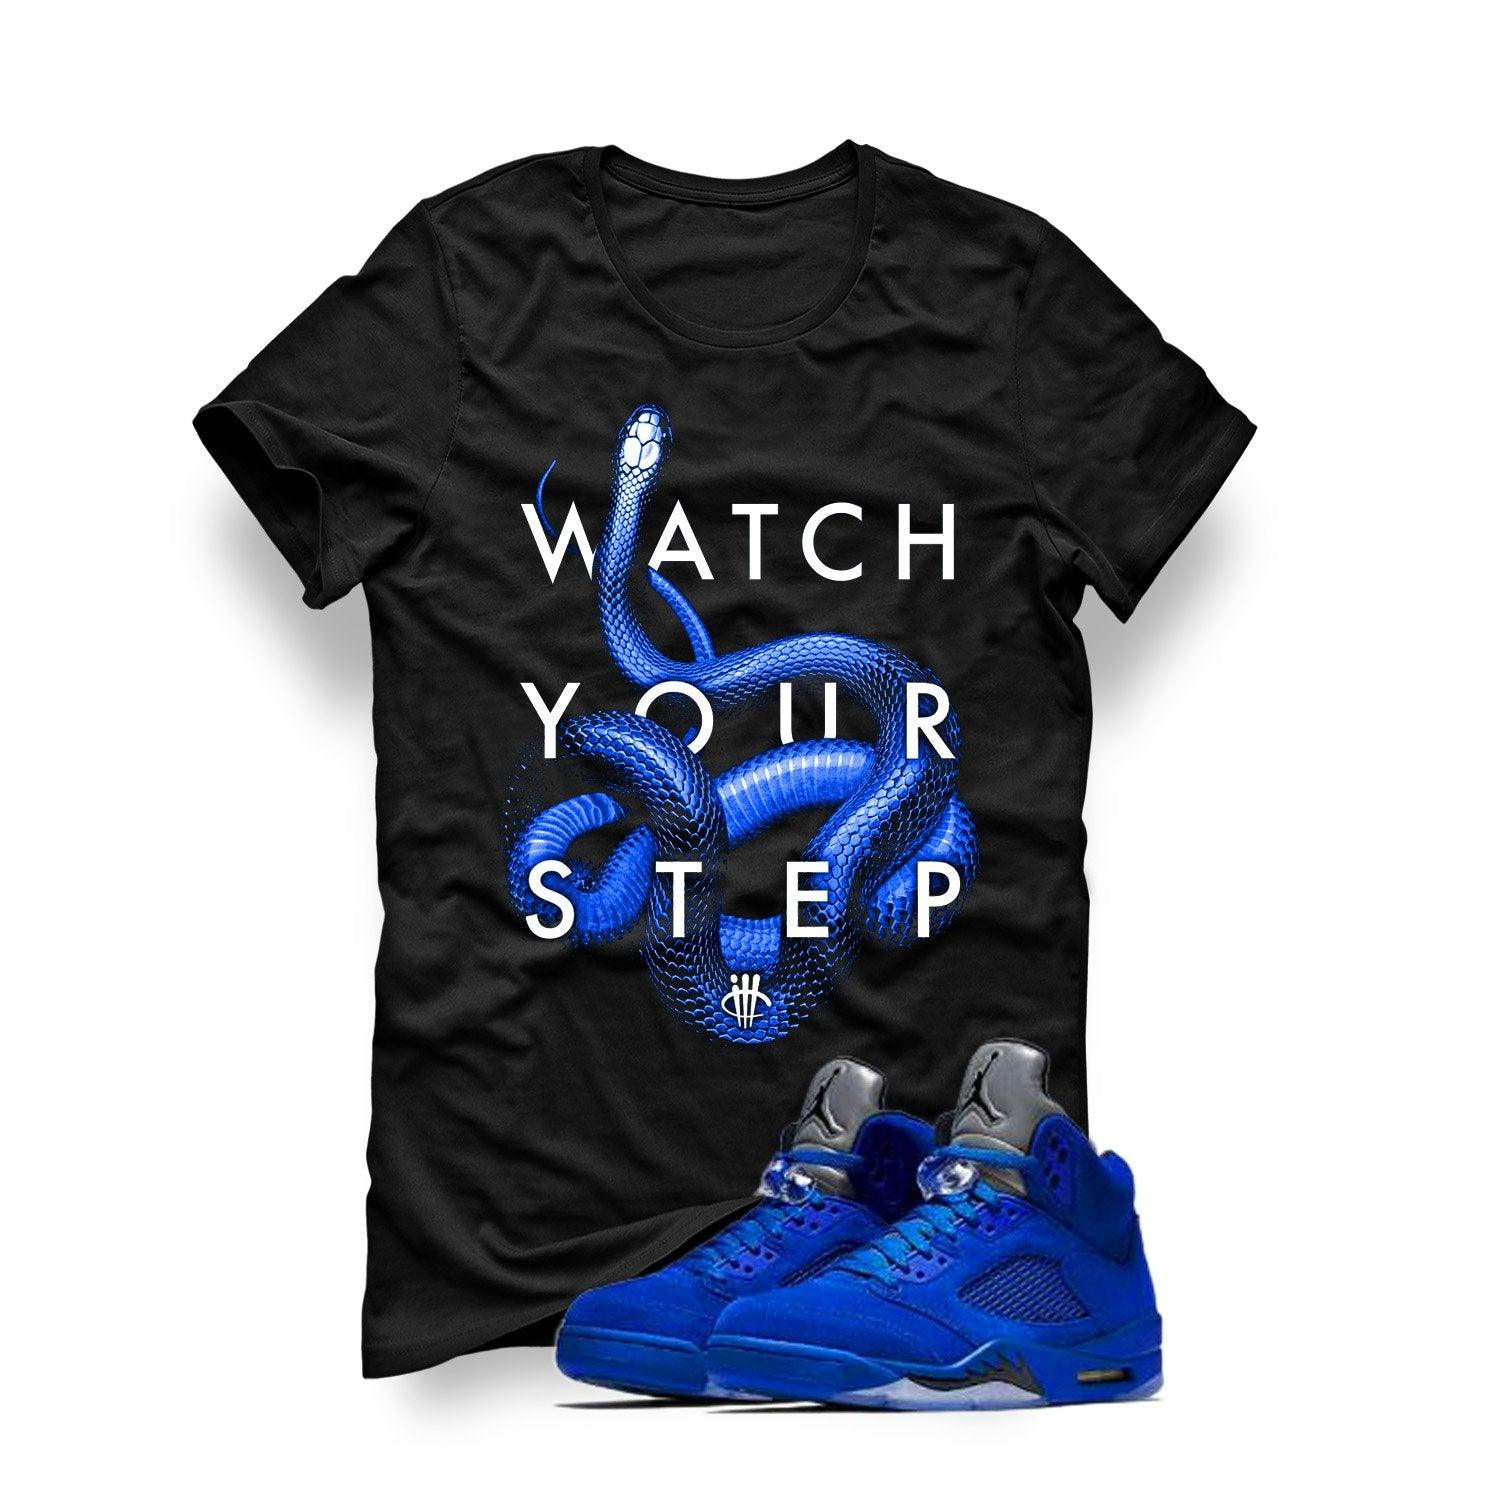 new arrival 2a54e ecb13 Air Jordan 5 Blue Suede Black T (Watch Your Step)